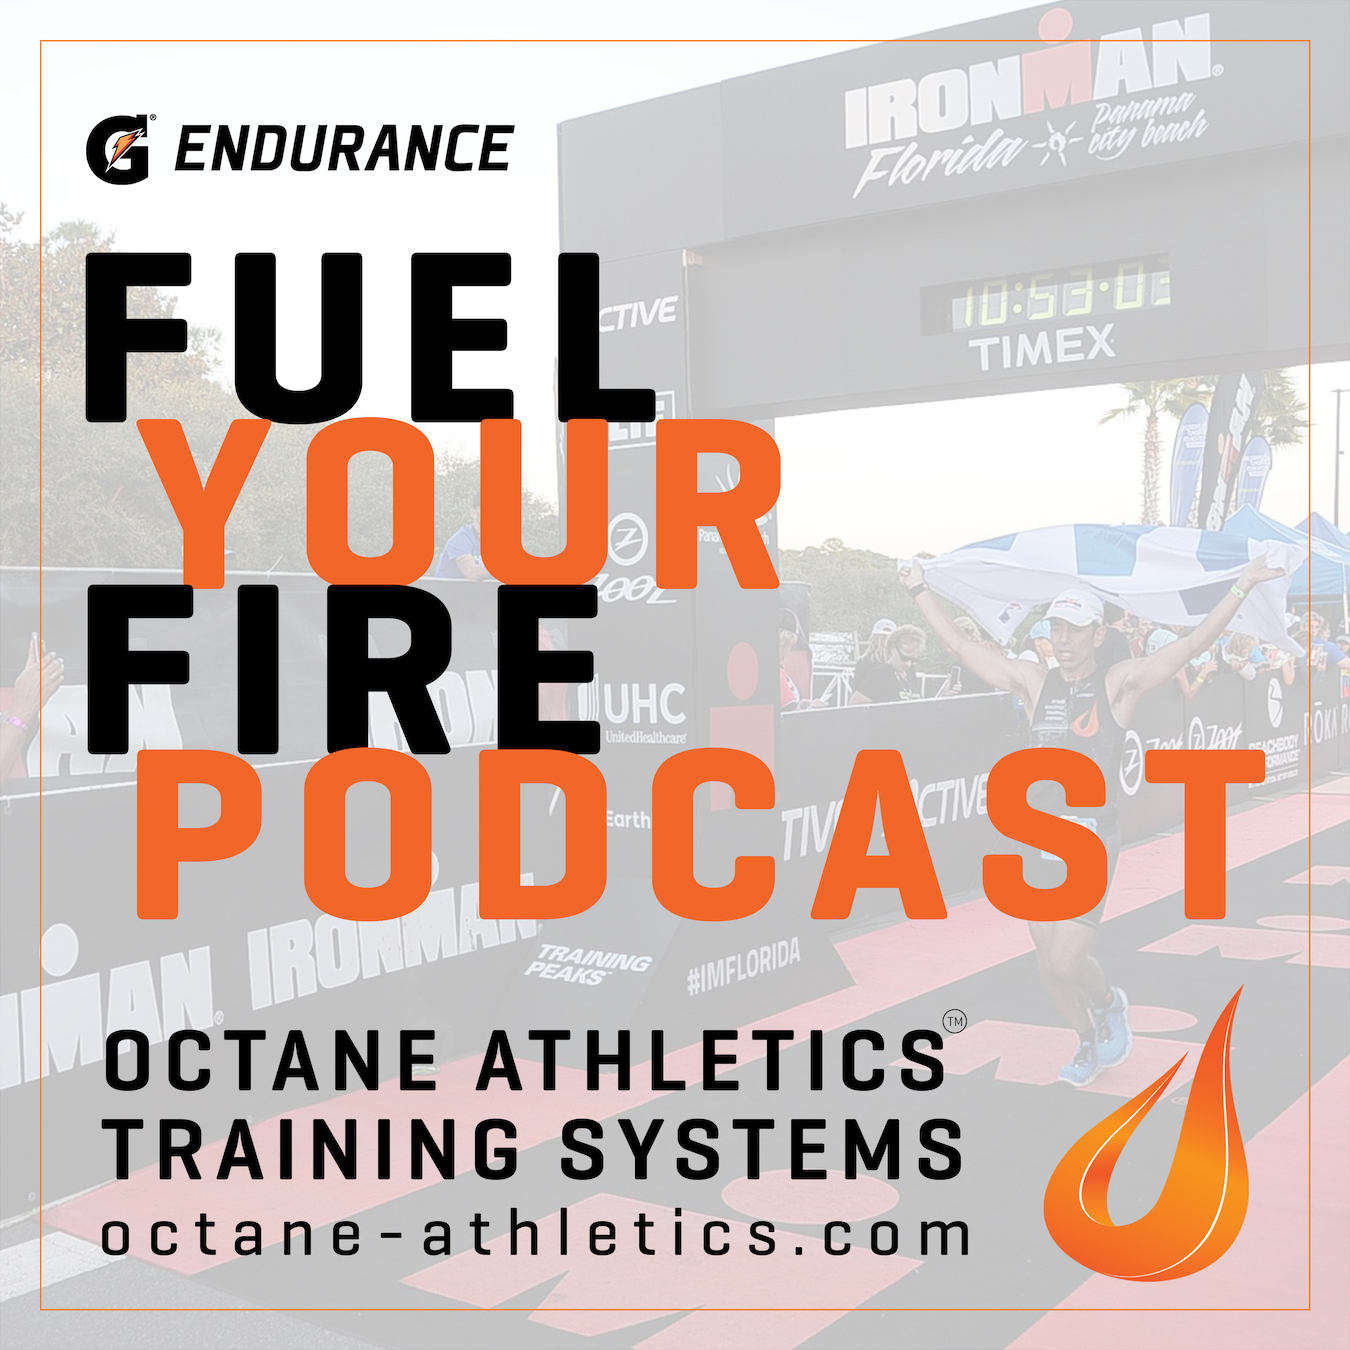 Episode 25: It's getting HOT... how to get acclimated, Dave and Mike go racin' for their causes.